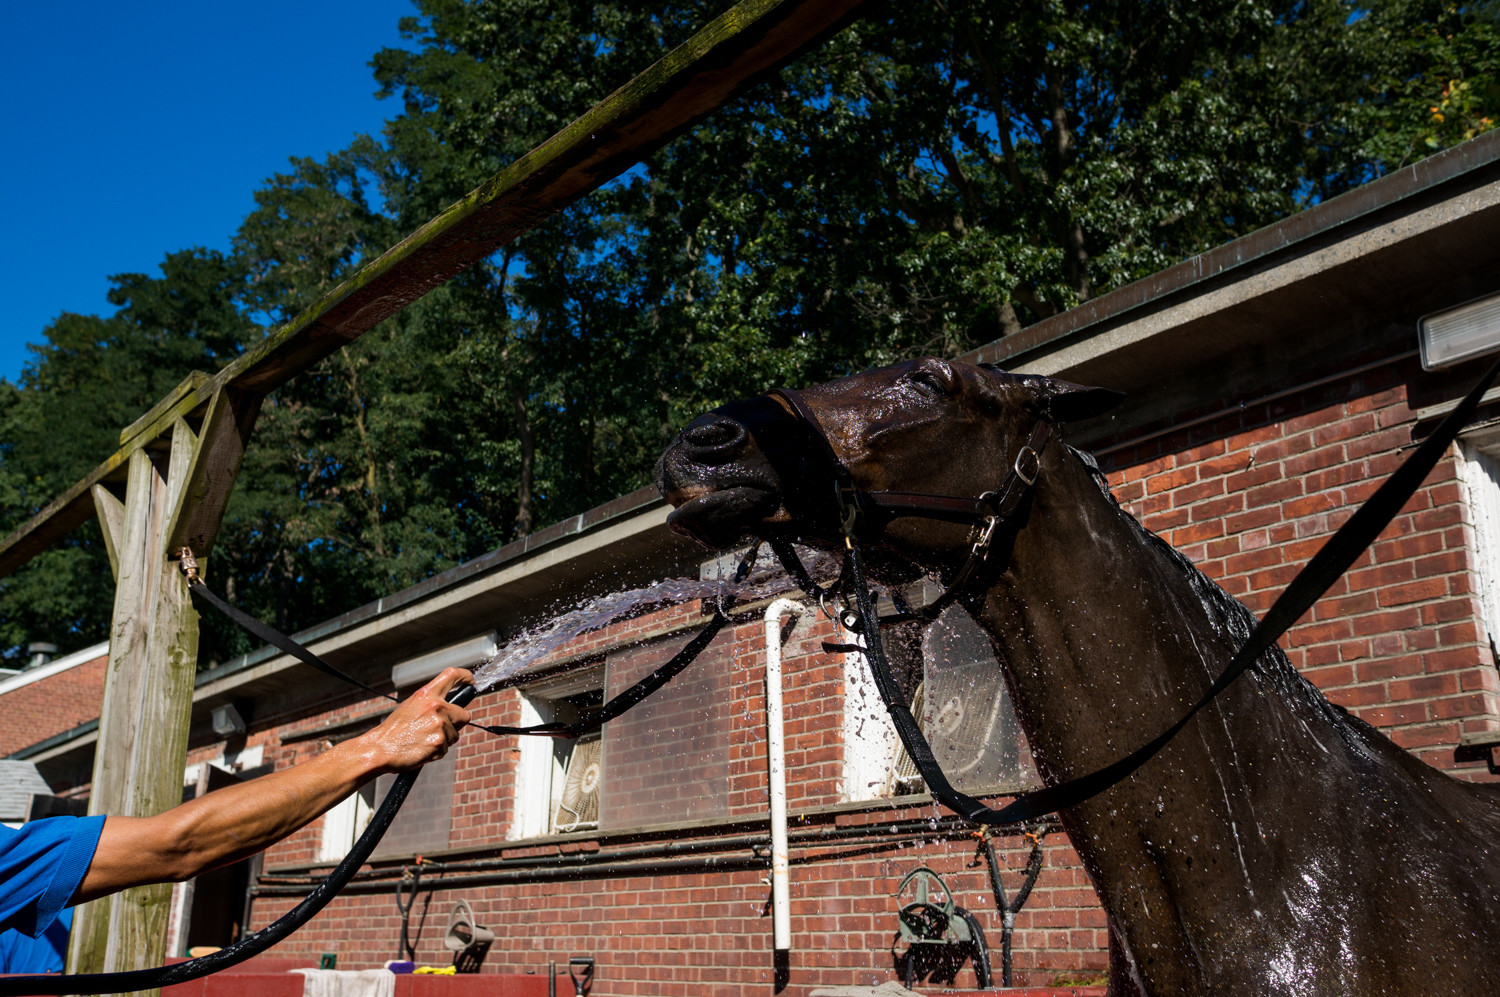 Warmblood horse Monty, gets a bath at the Riverdale Stables. He's one of the 80 horses housed at the Vannie location.